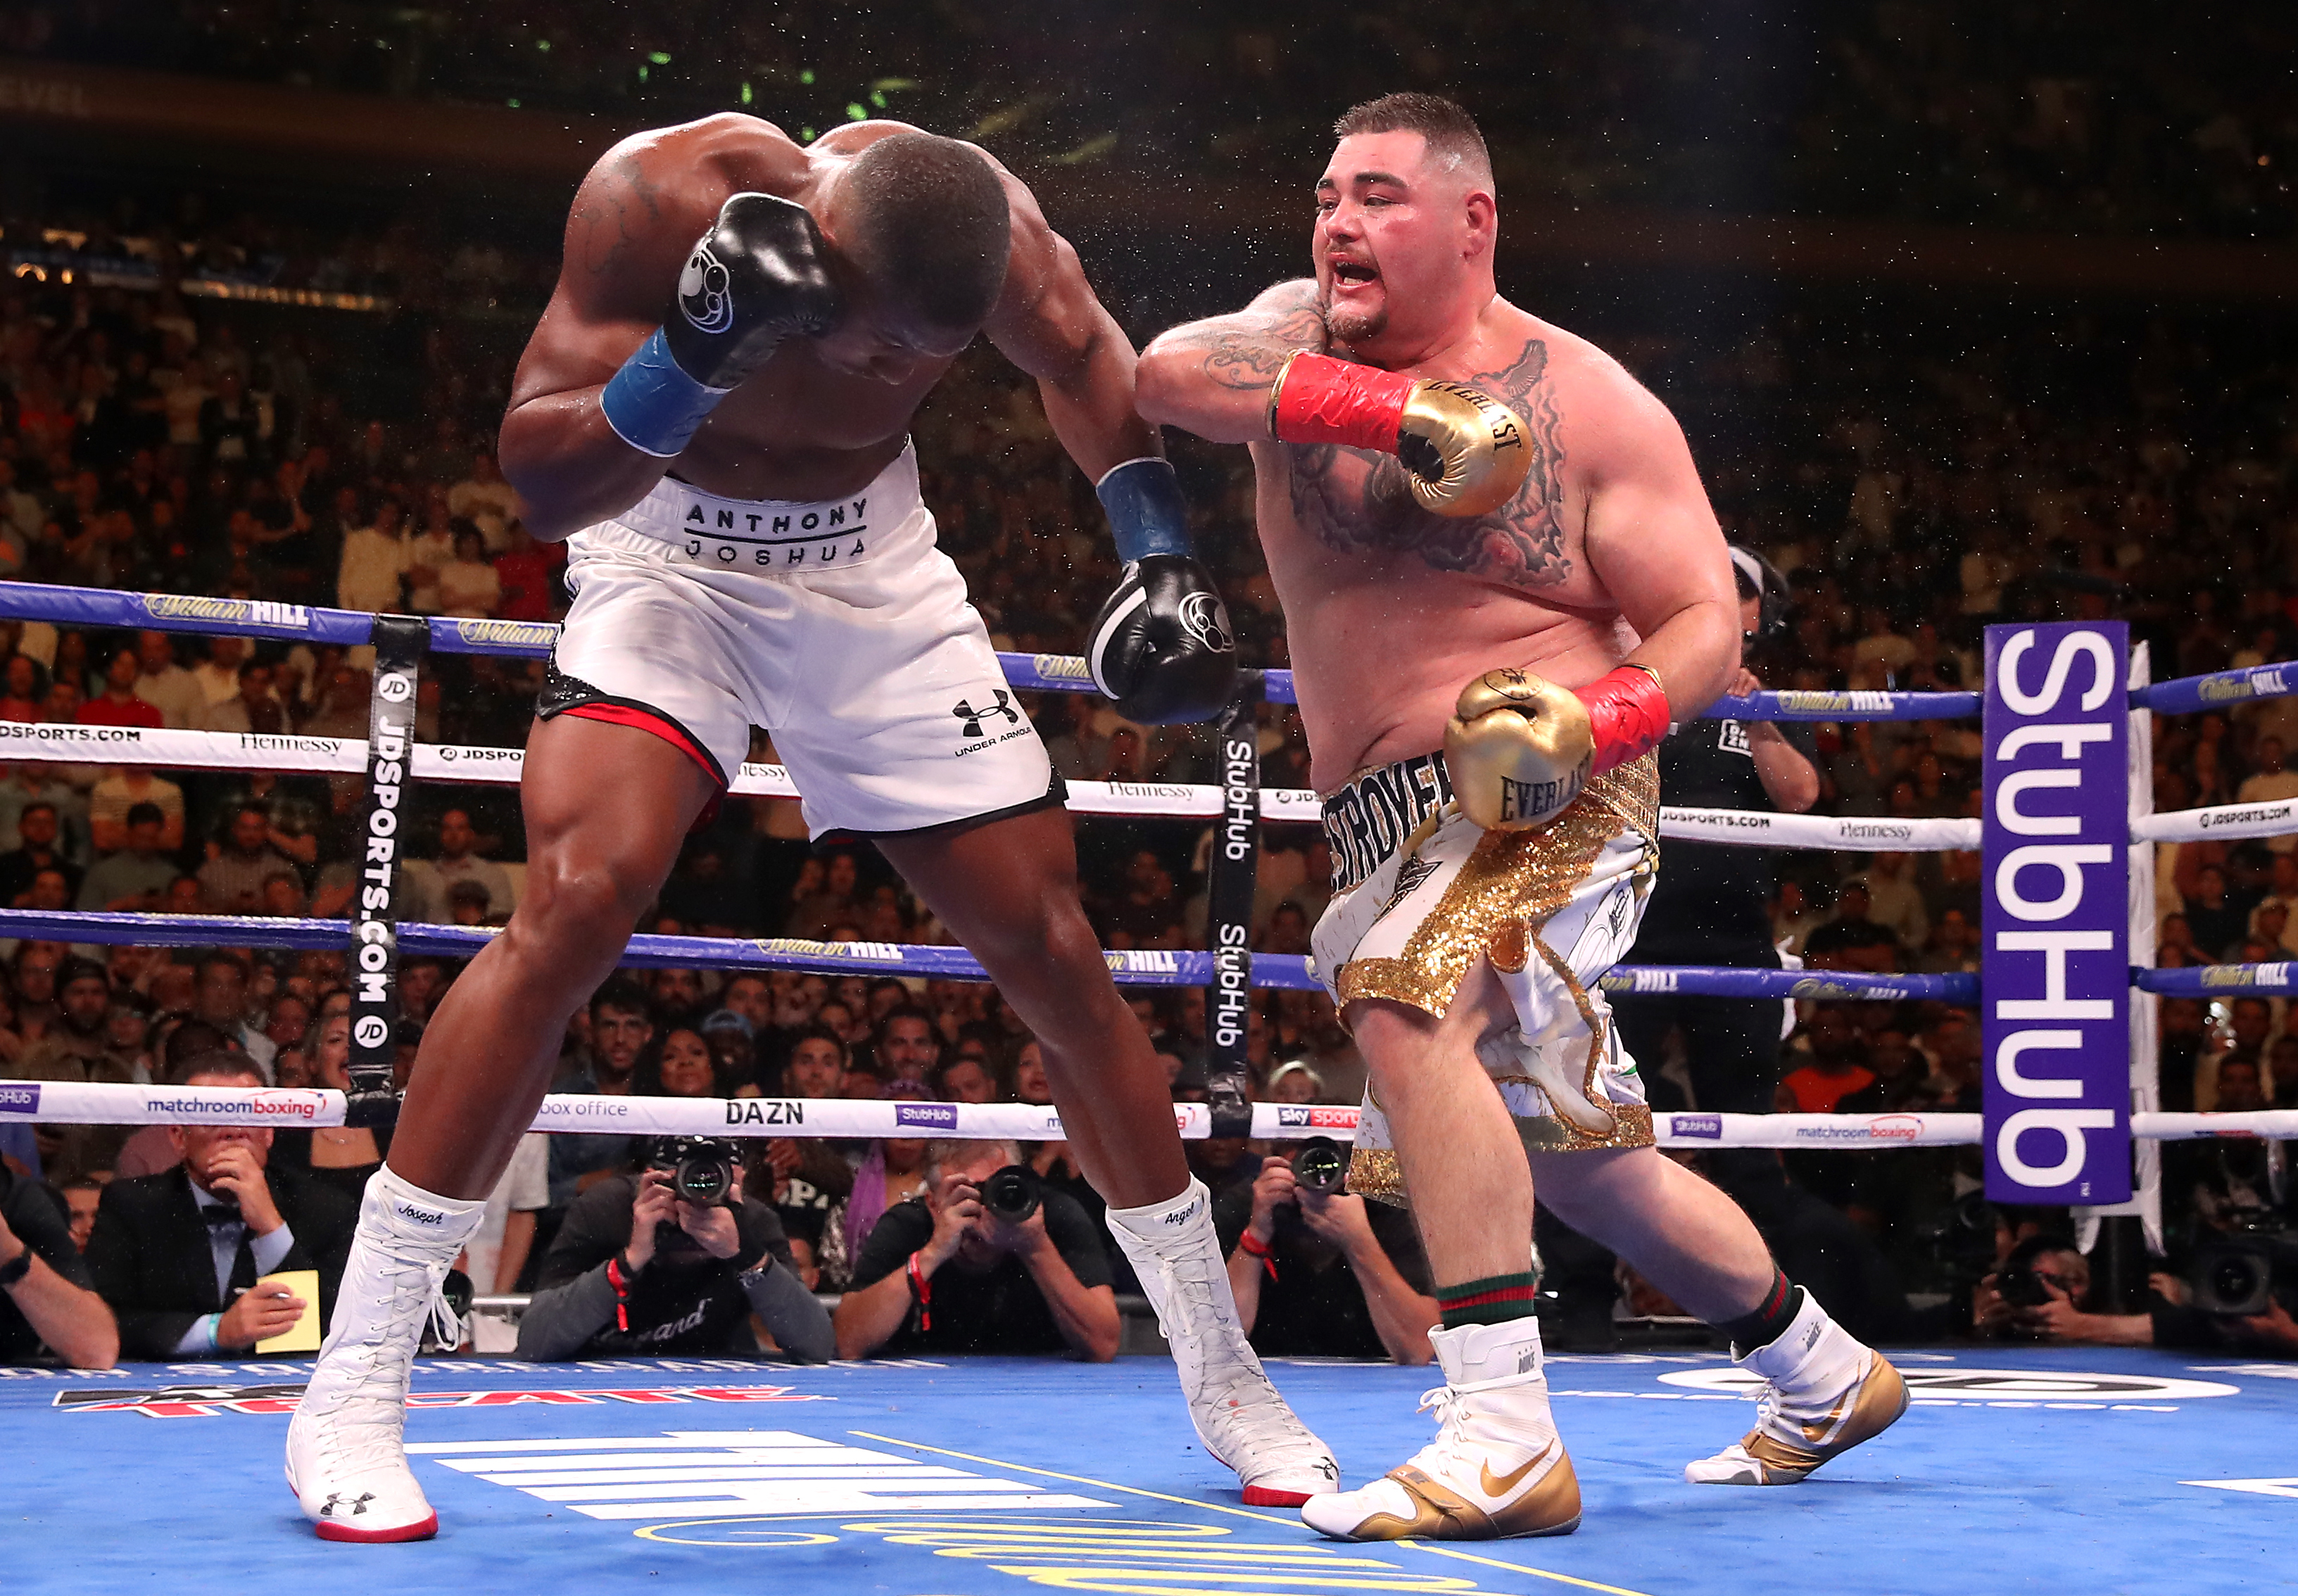 Anthony Joshua vs Ruiz Jr rematch to be held in Saudi Arabia